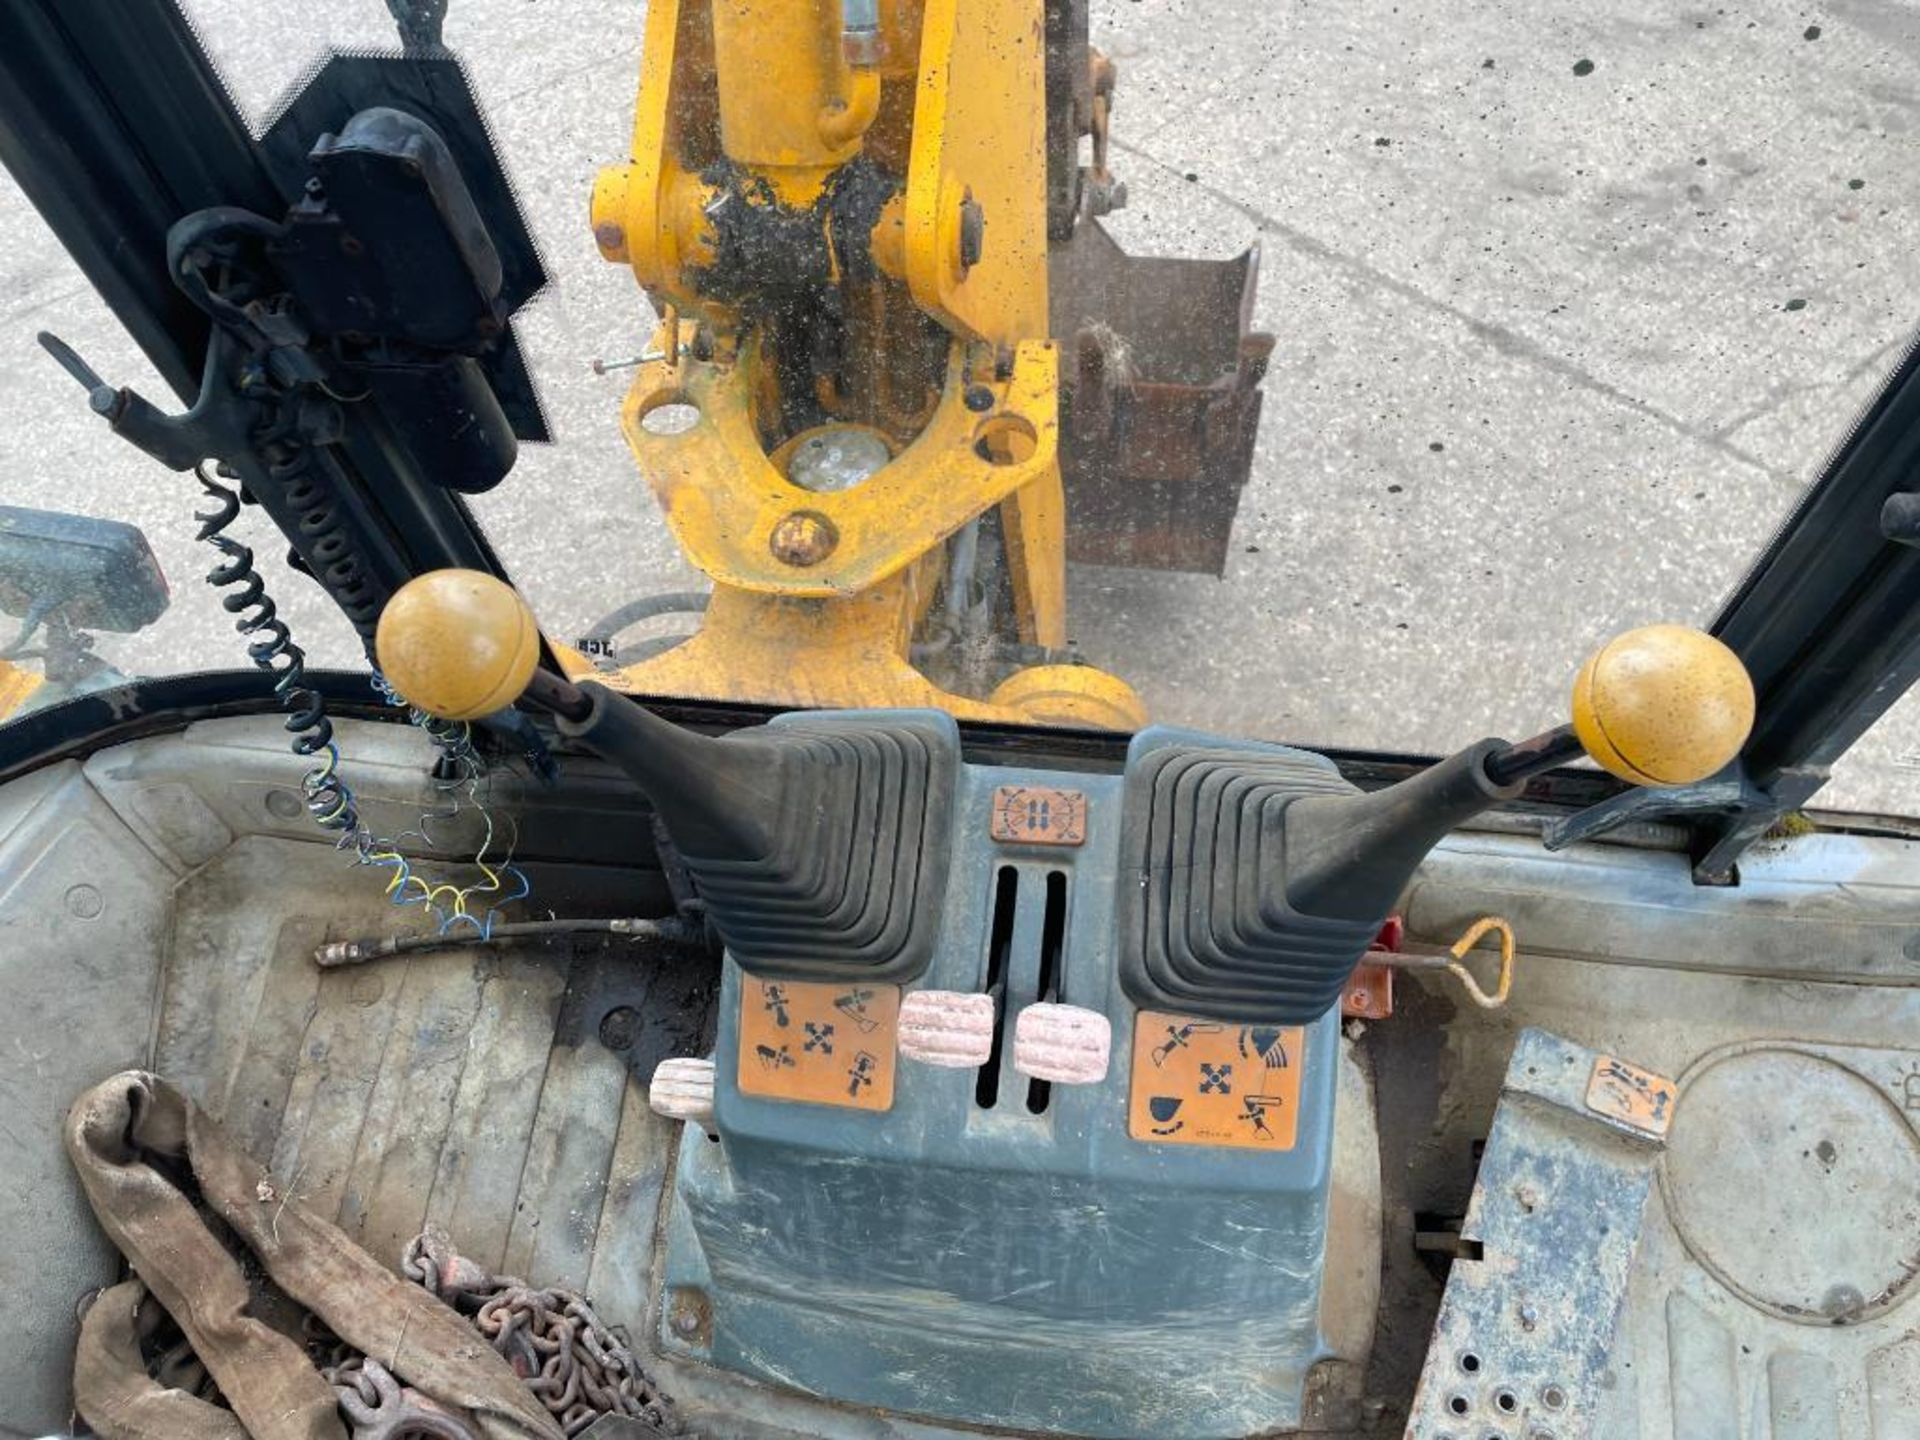 1993 JCB 3CX Sitemaster 4wd back hoe loader with 3 in 1 bucket on 10.5/80-18 front and 18.4-26 rear - Image 12 of 14